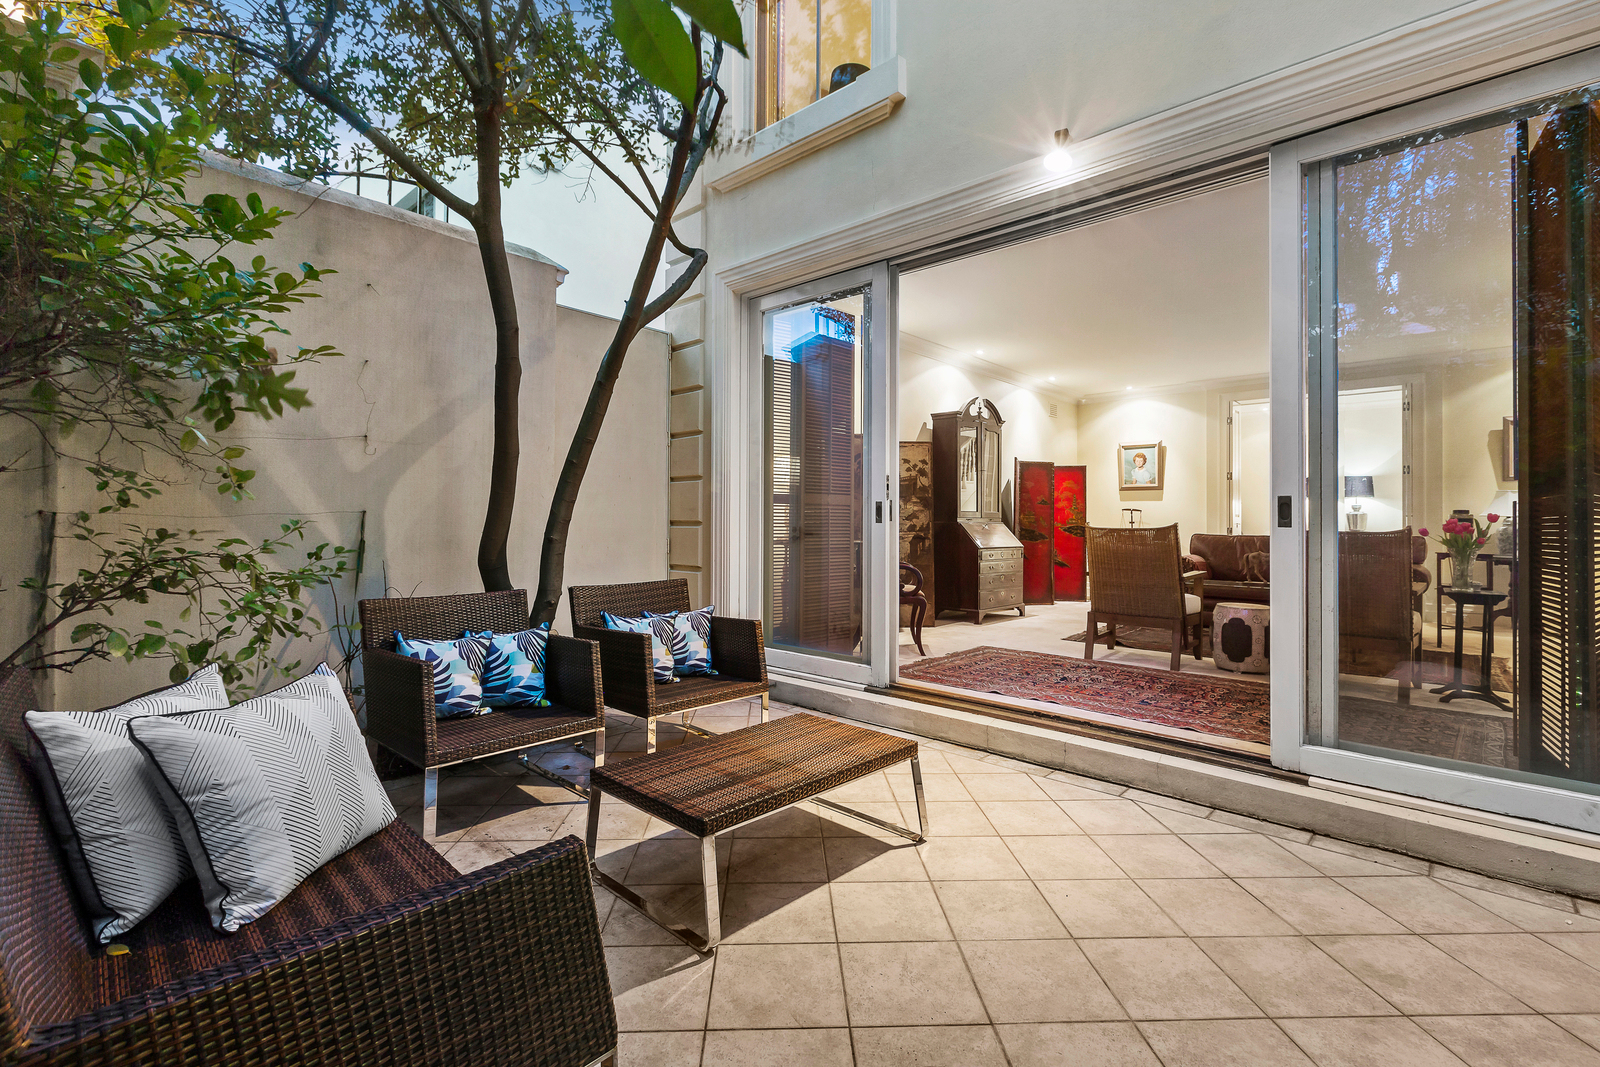 37 Washington Street, Toorak 3142 - Image 5